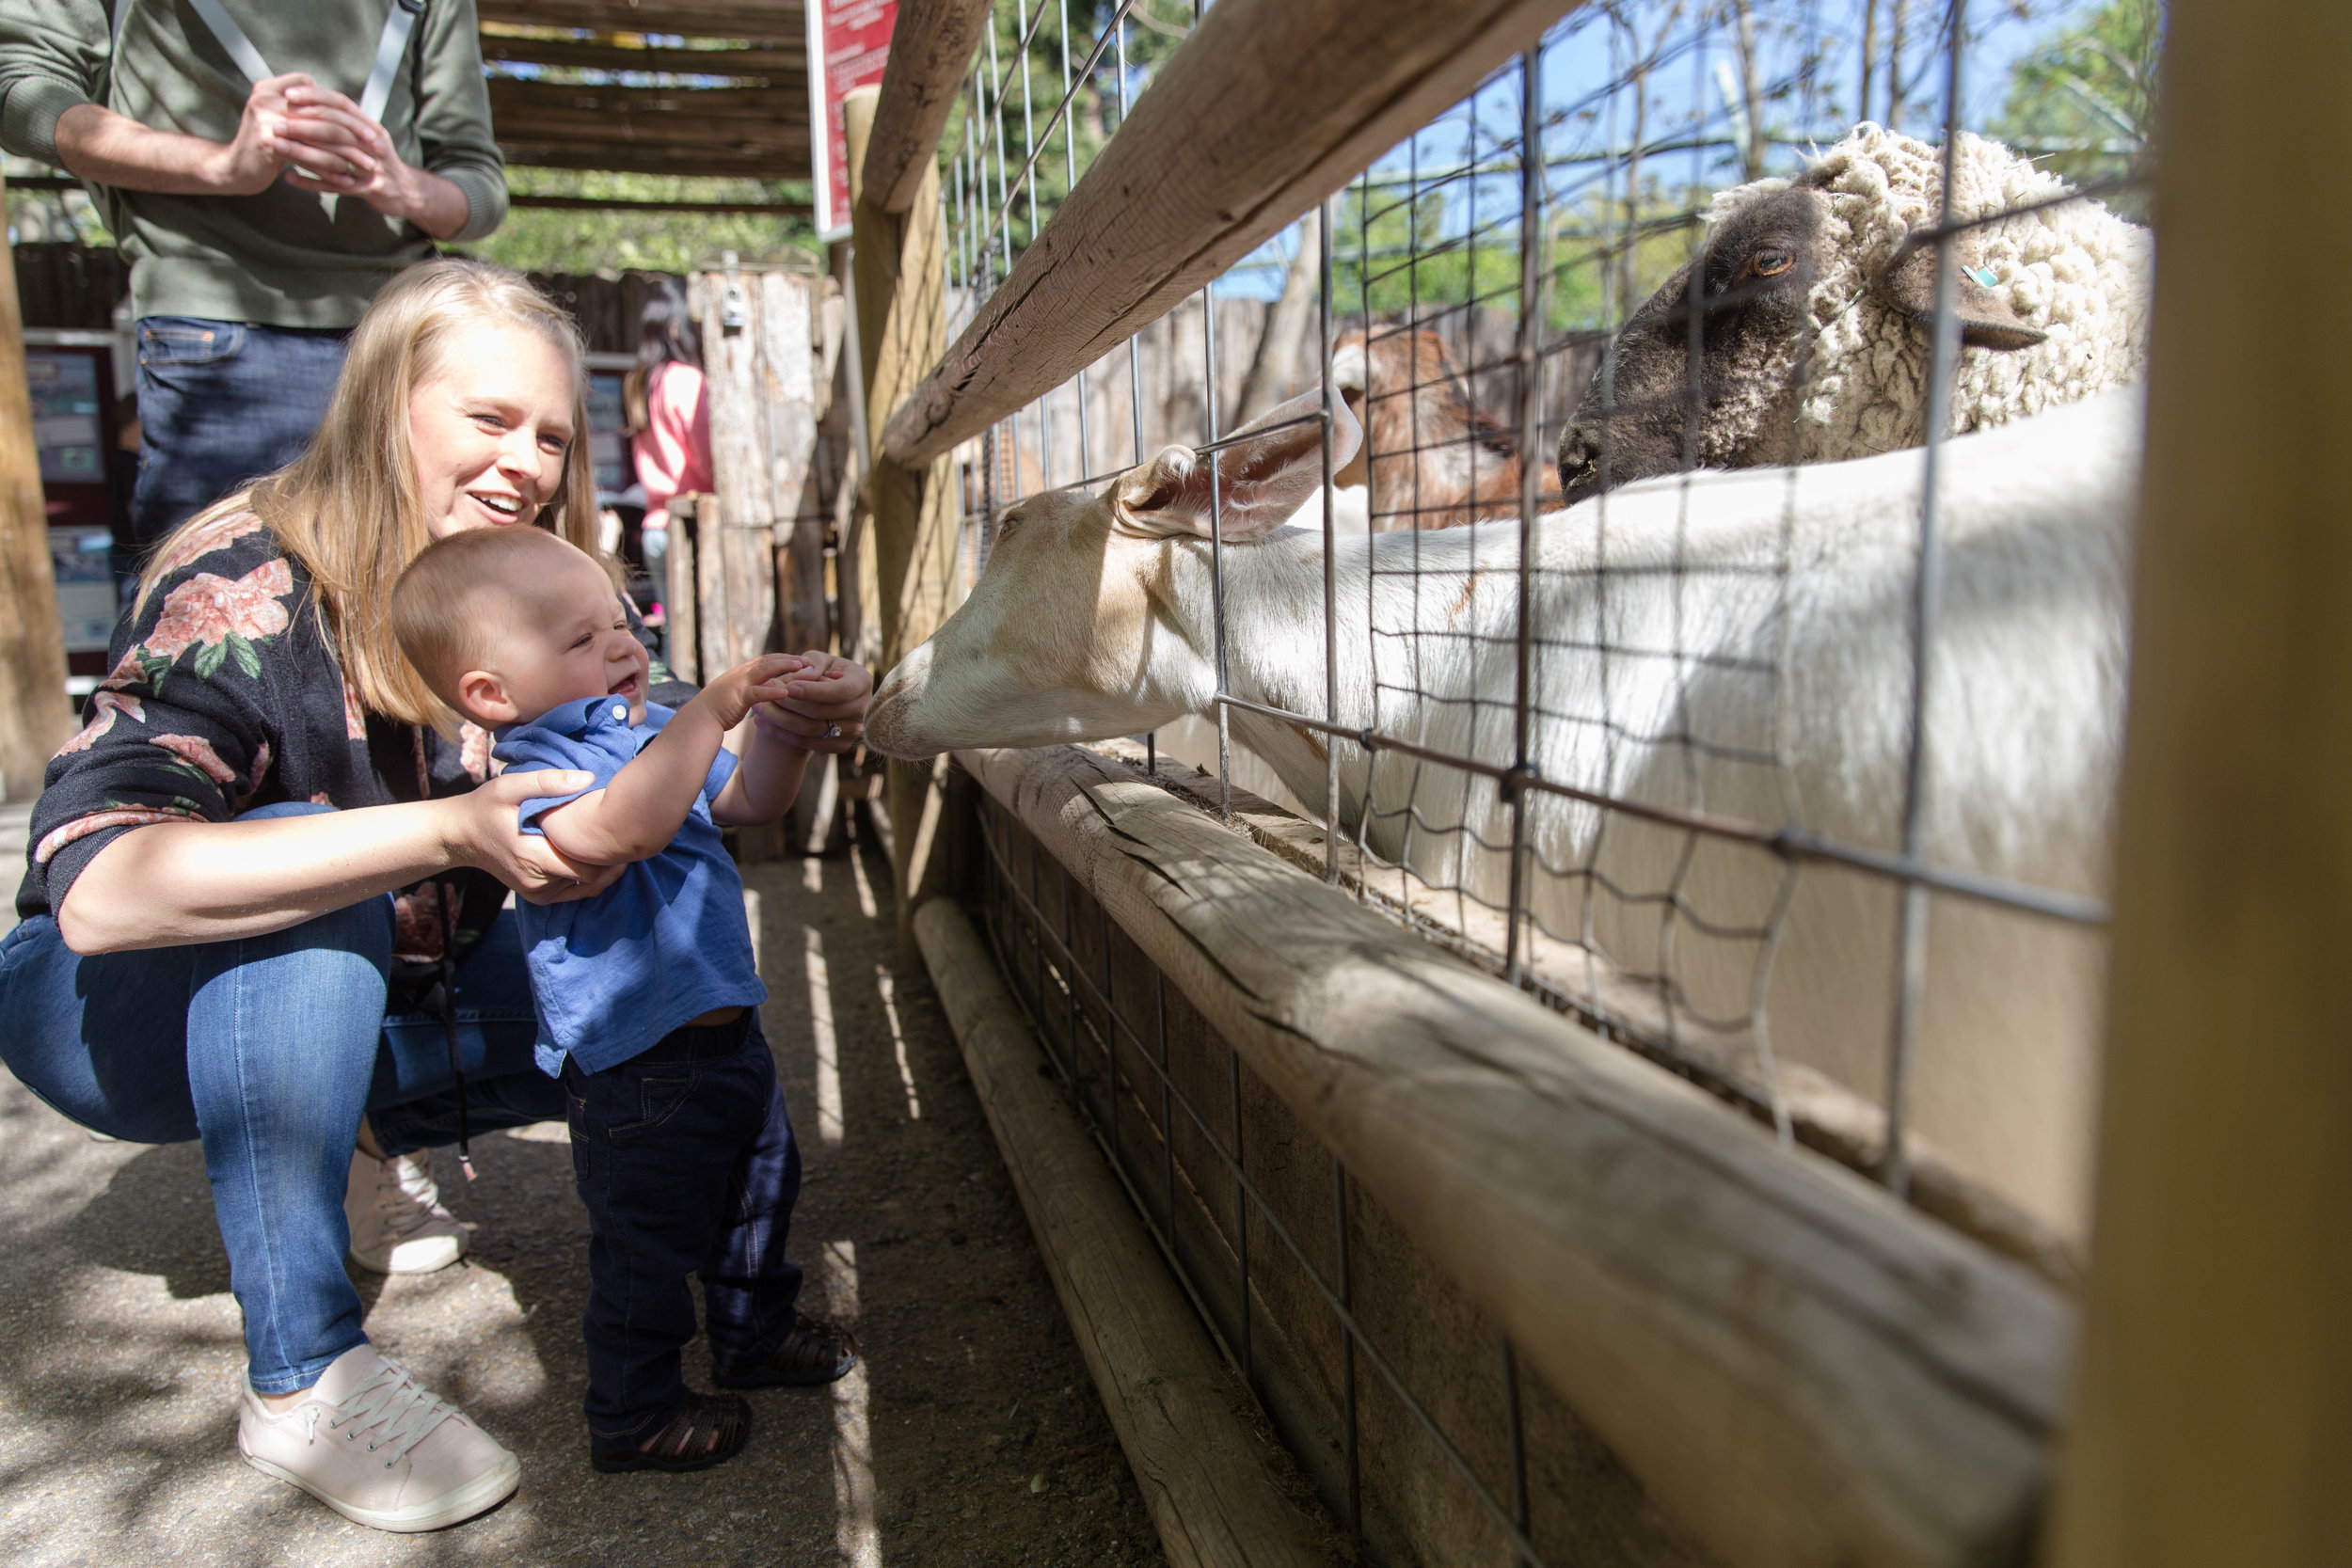 Mom helping her one year old son feed the goats while dad stands by. Goat poking his head through the fence to reach the food. Zoo Boise.